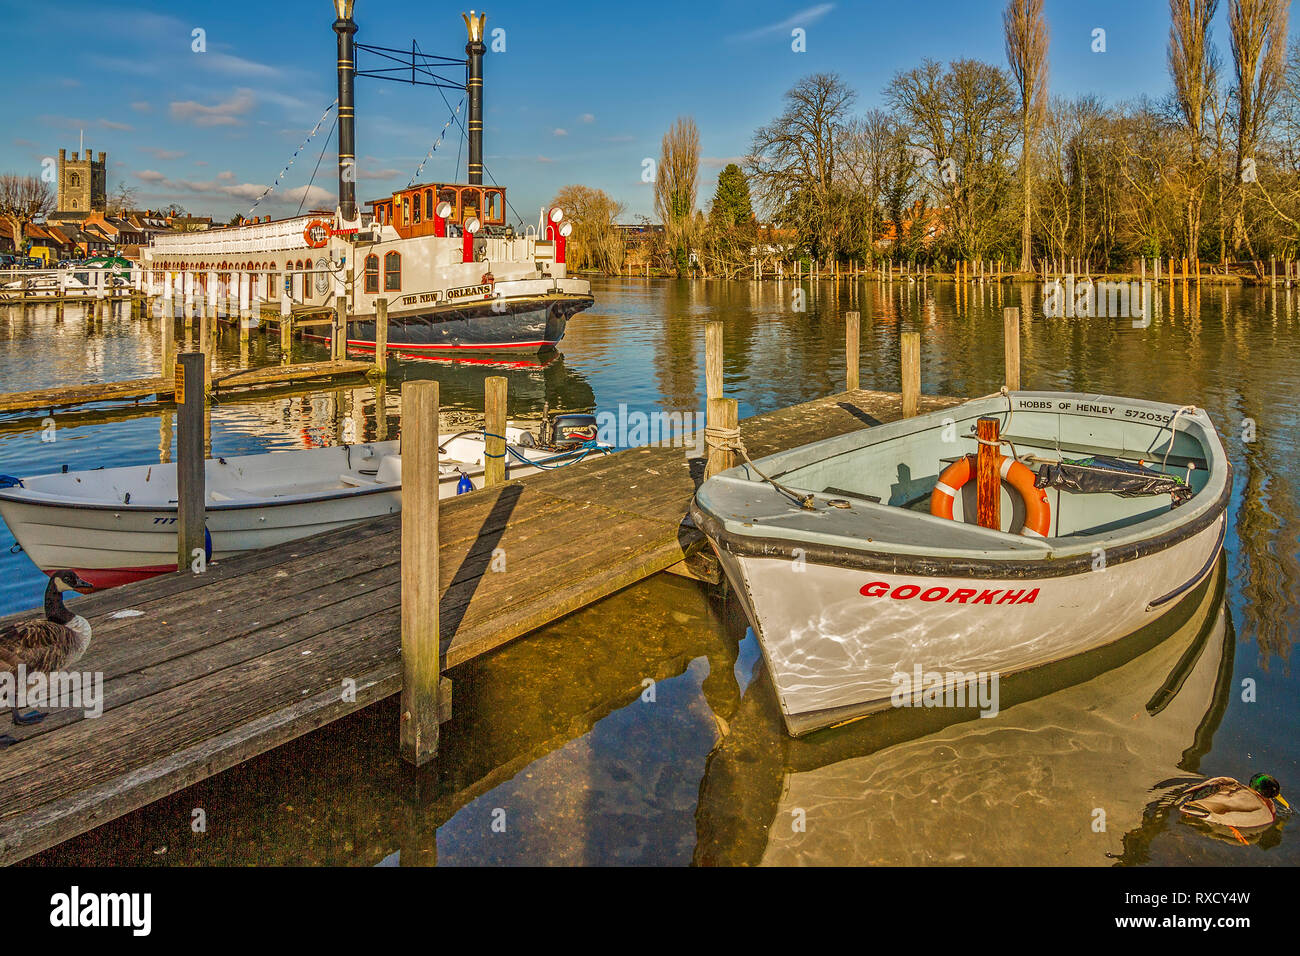 Boats and Paddle Steamer New Orleans, Henley On Thames, UK Stock Photo